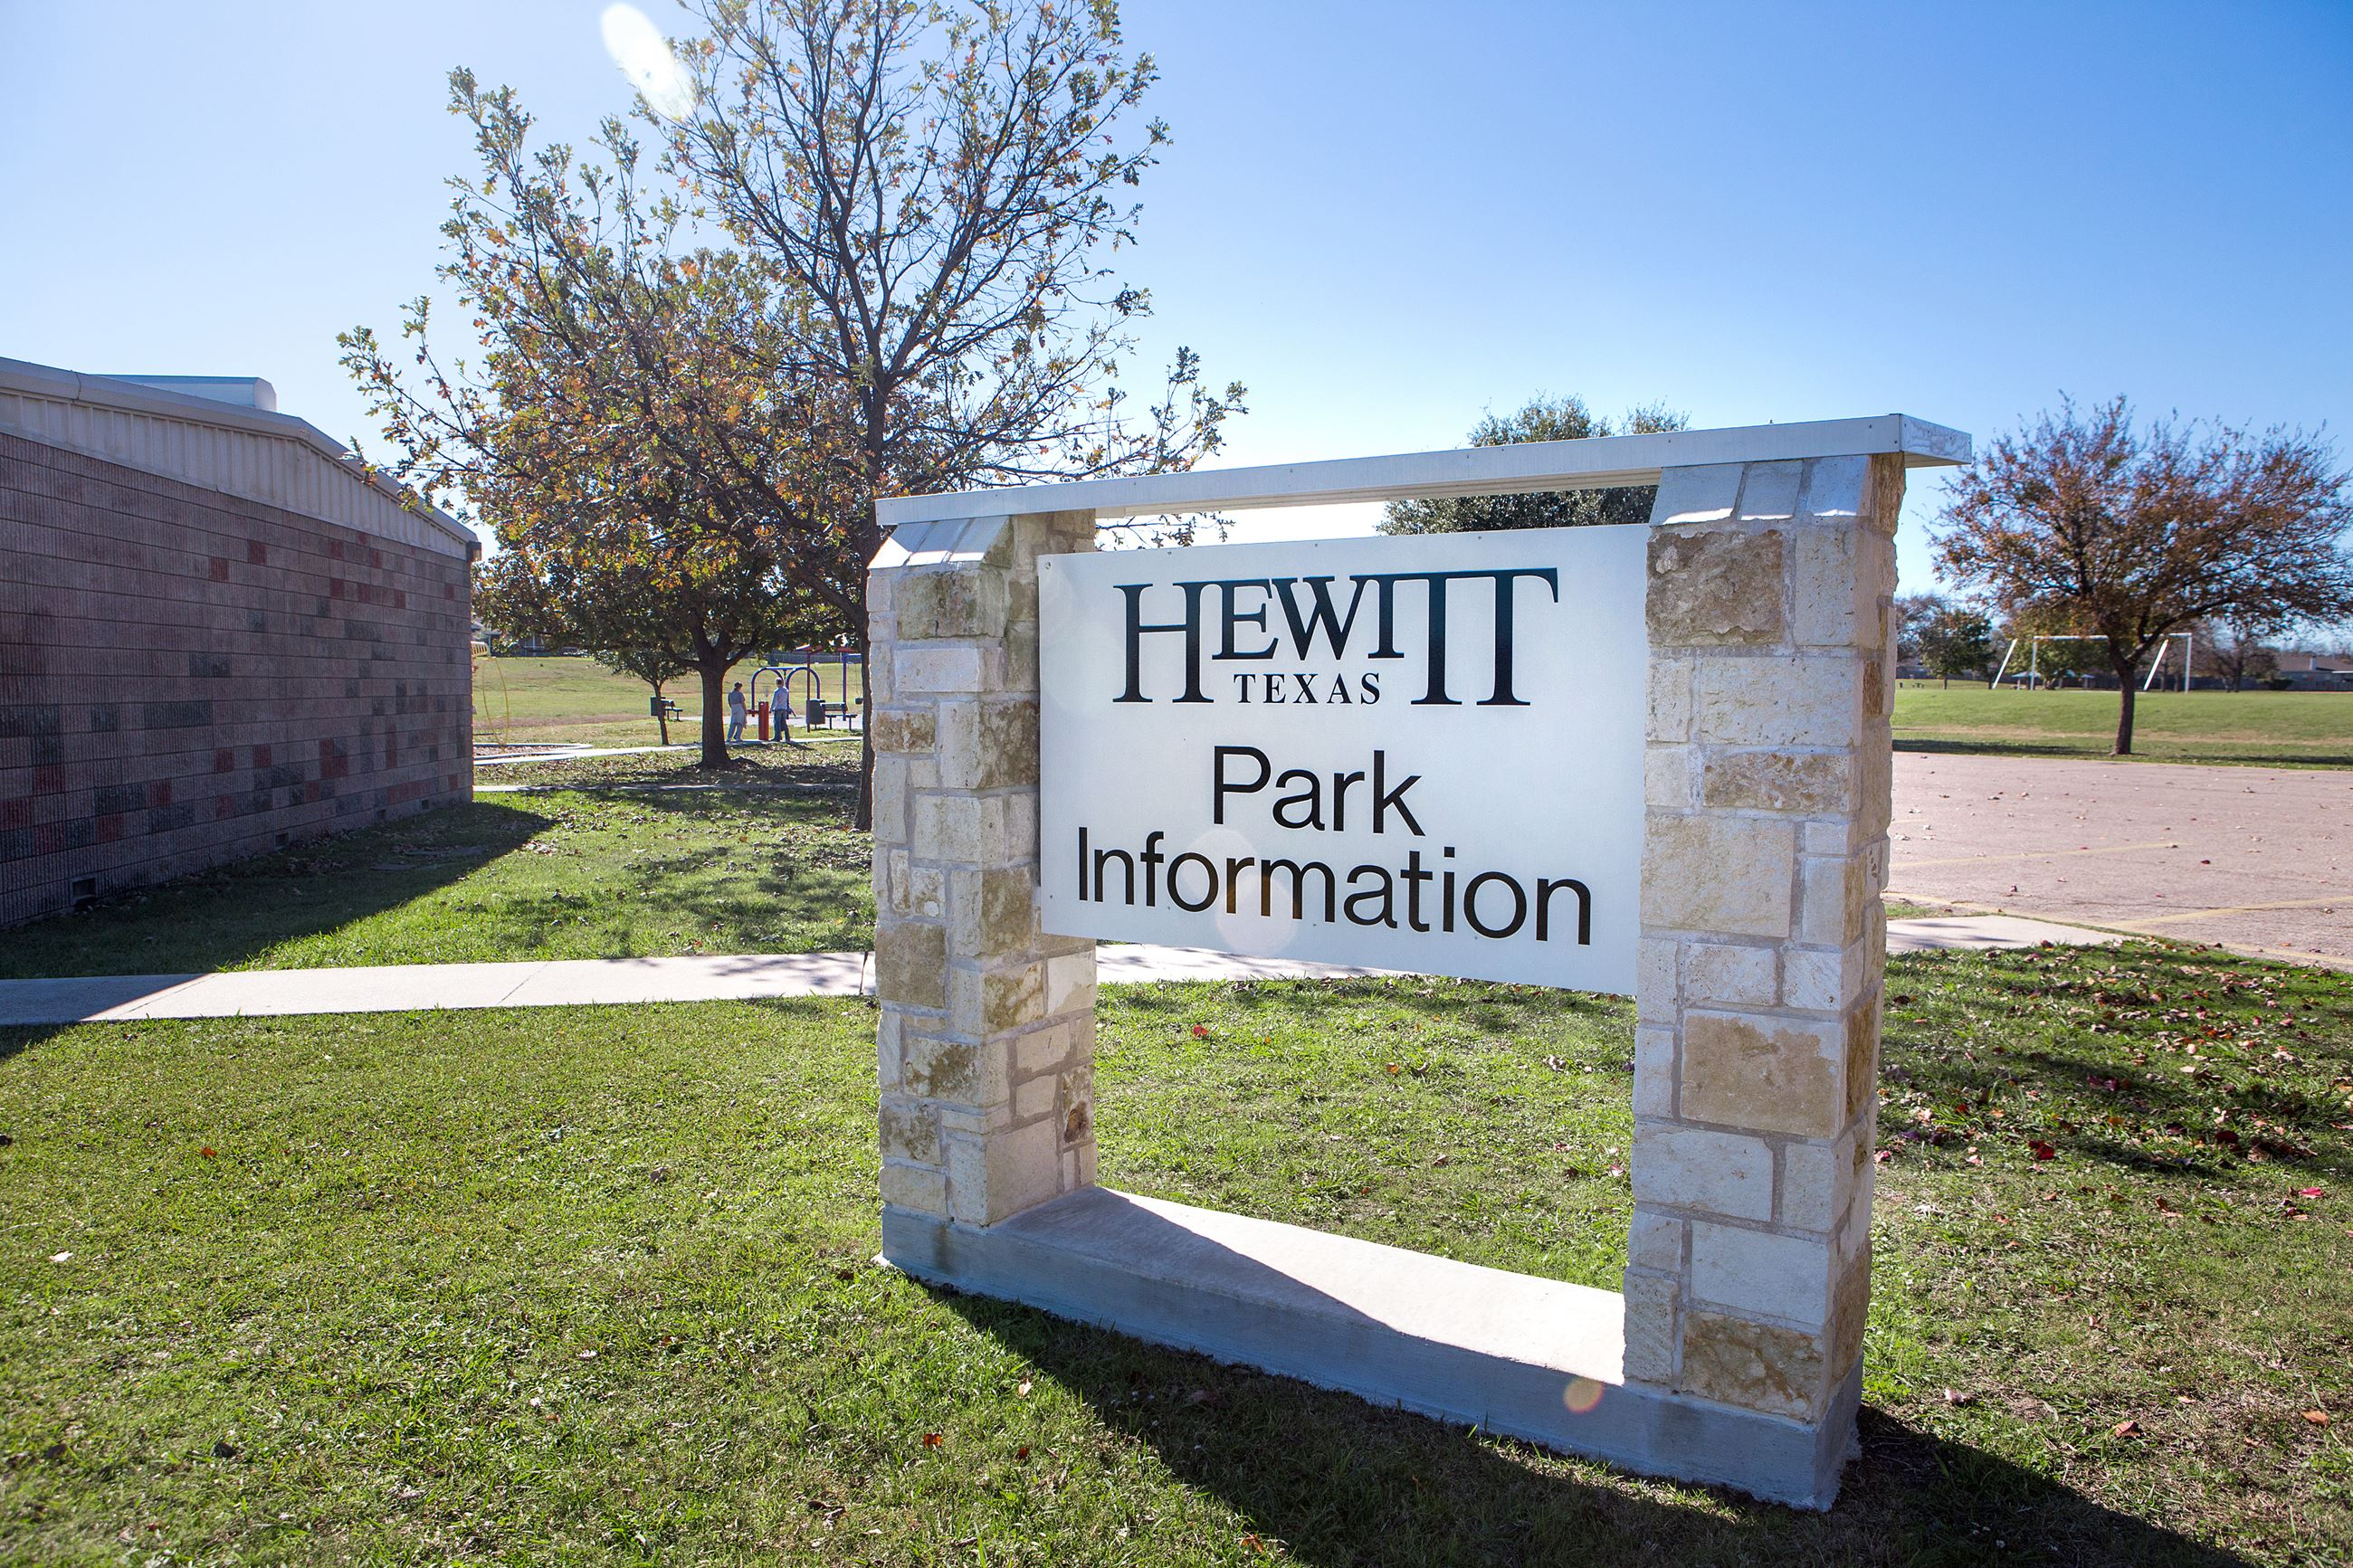 Hewitt Park Information Sign